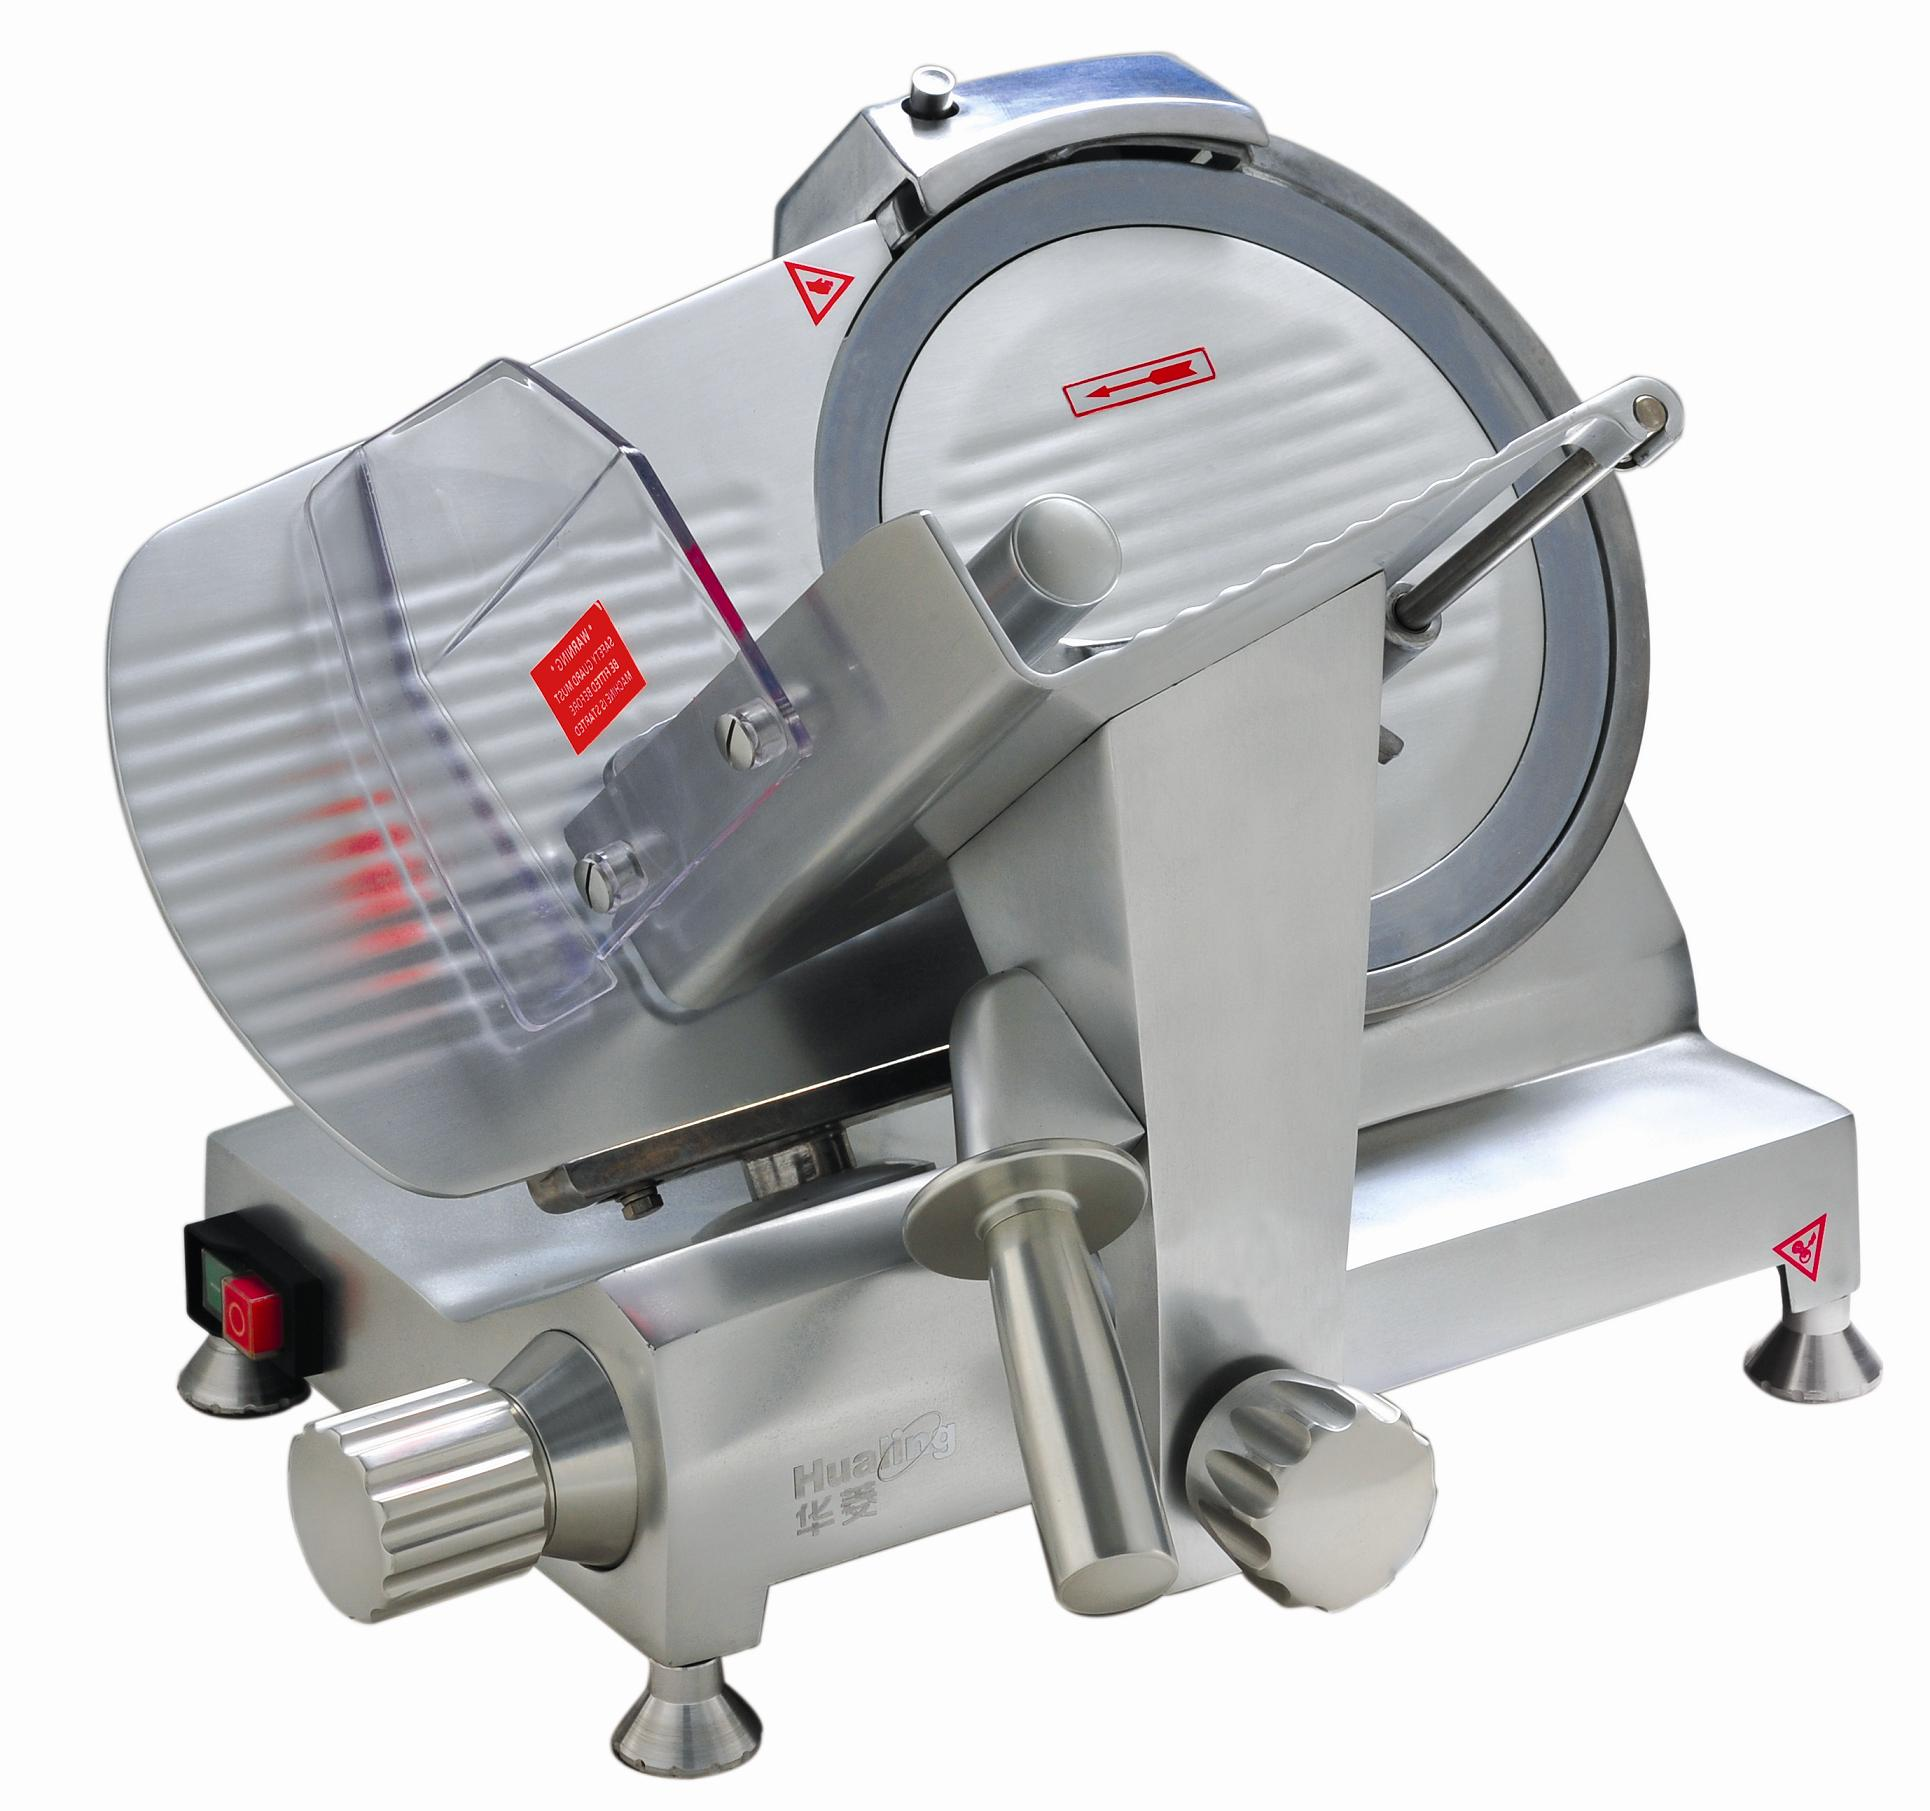 Eurodib USA HBS-250L meat slicers